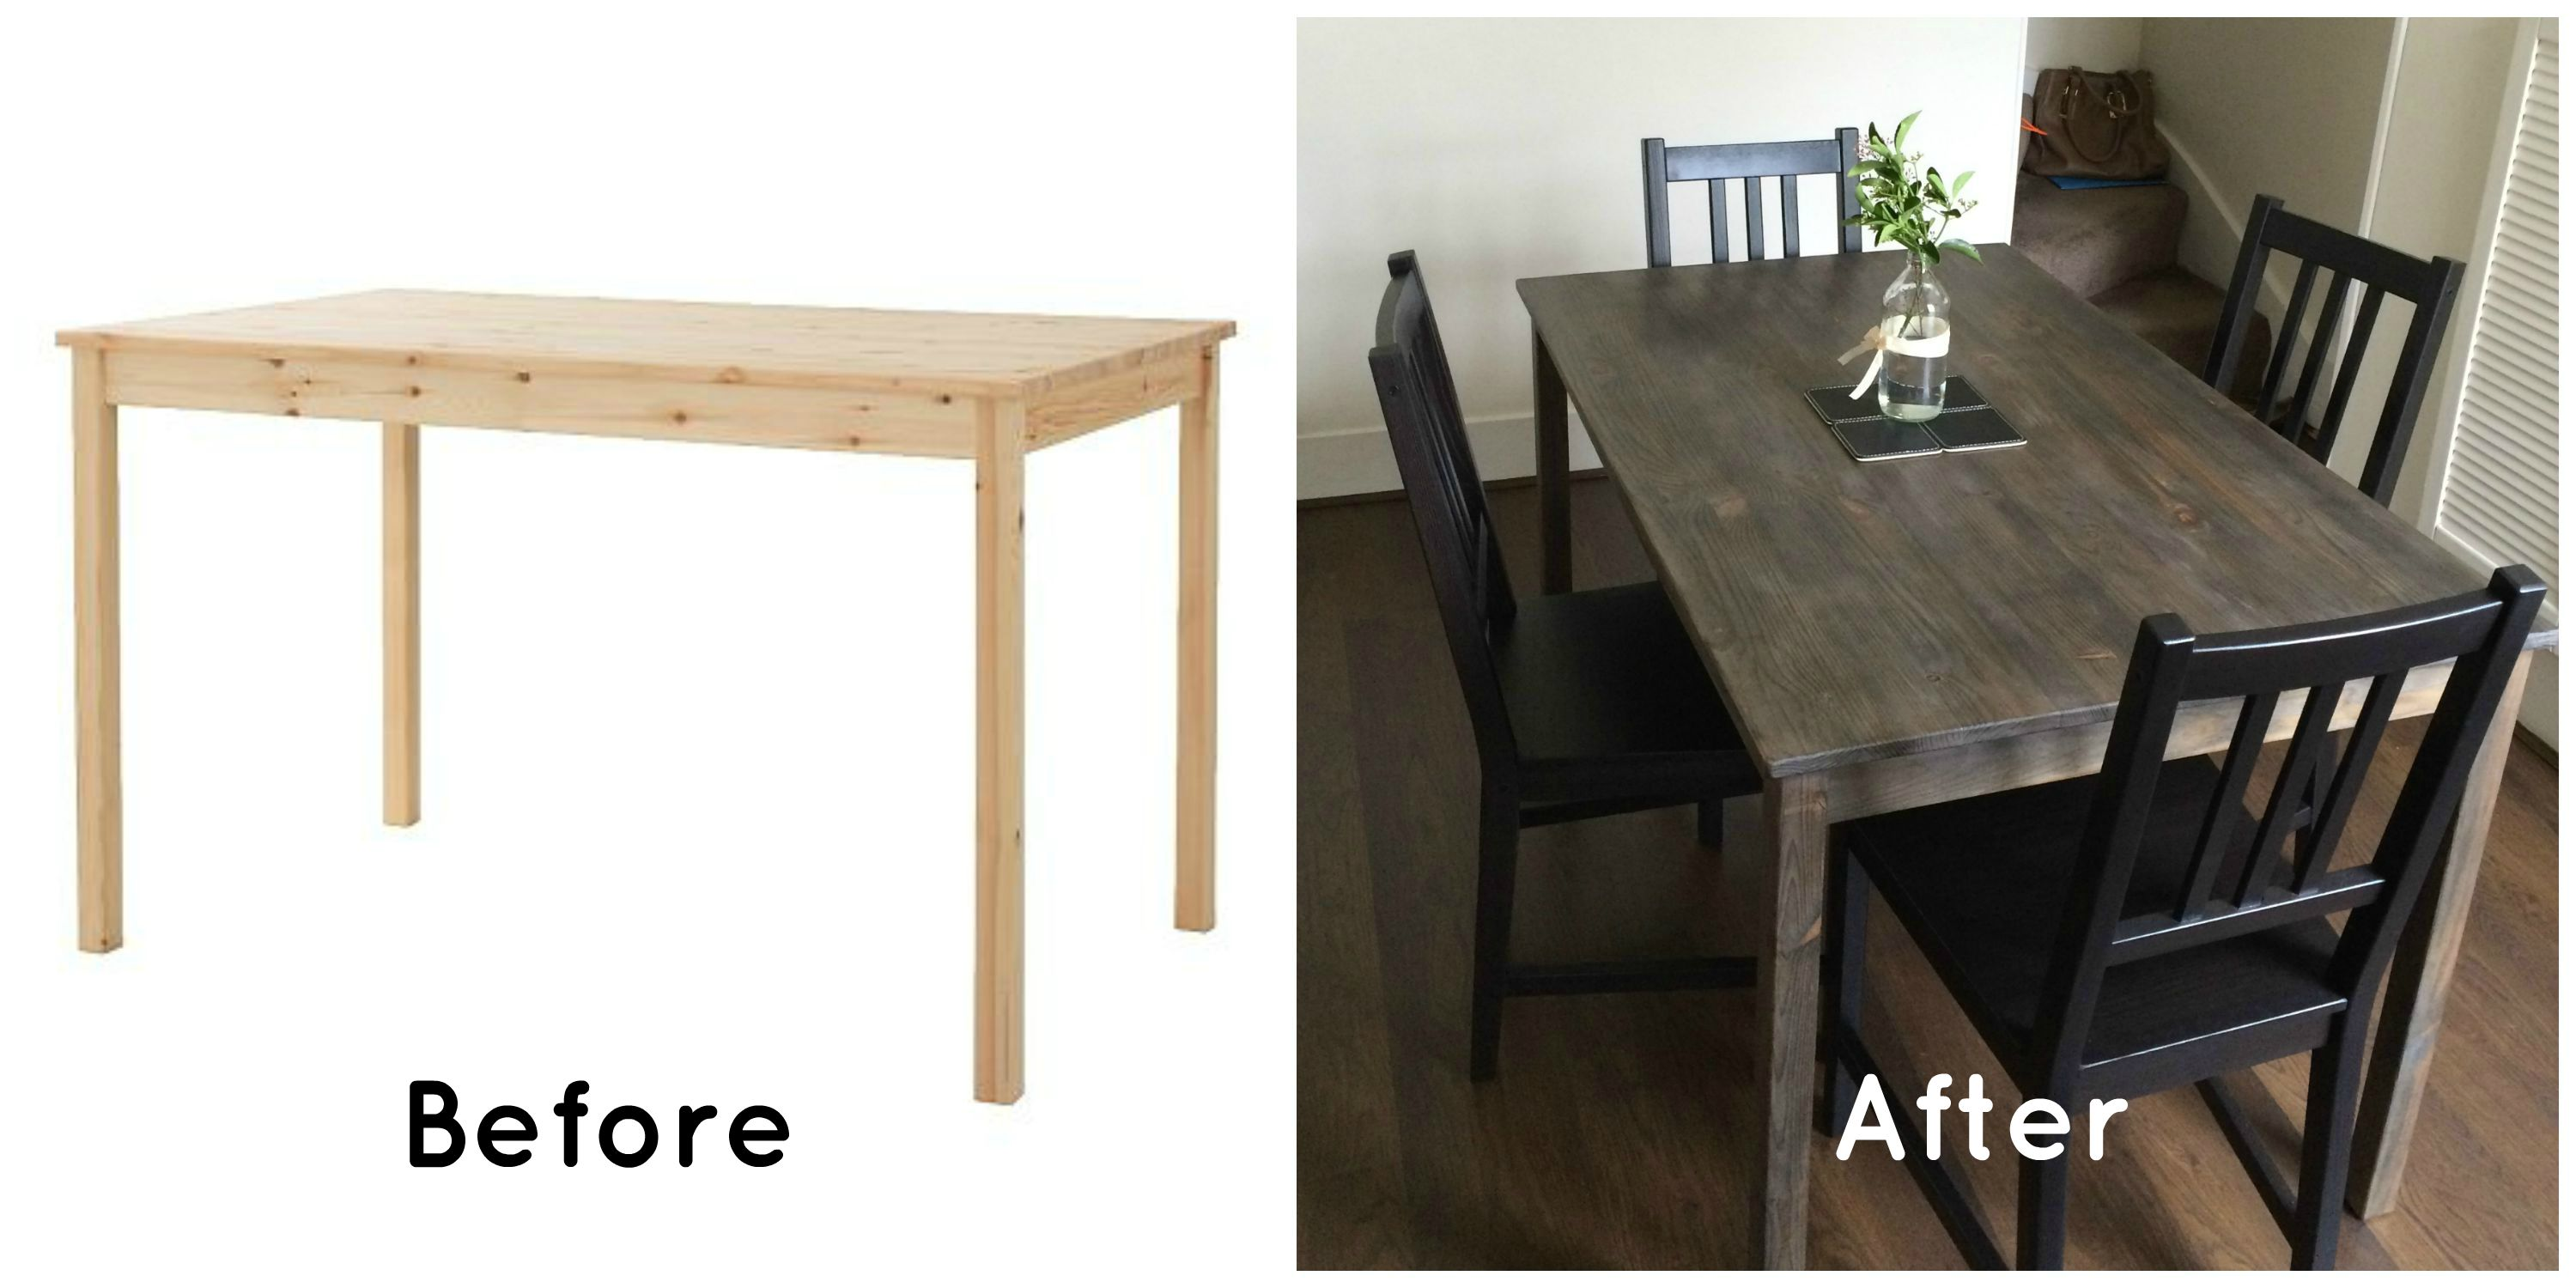 Dressing Up Ikea Tables – C l a r i M i c h e l e